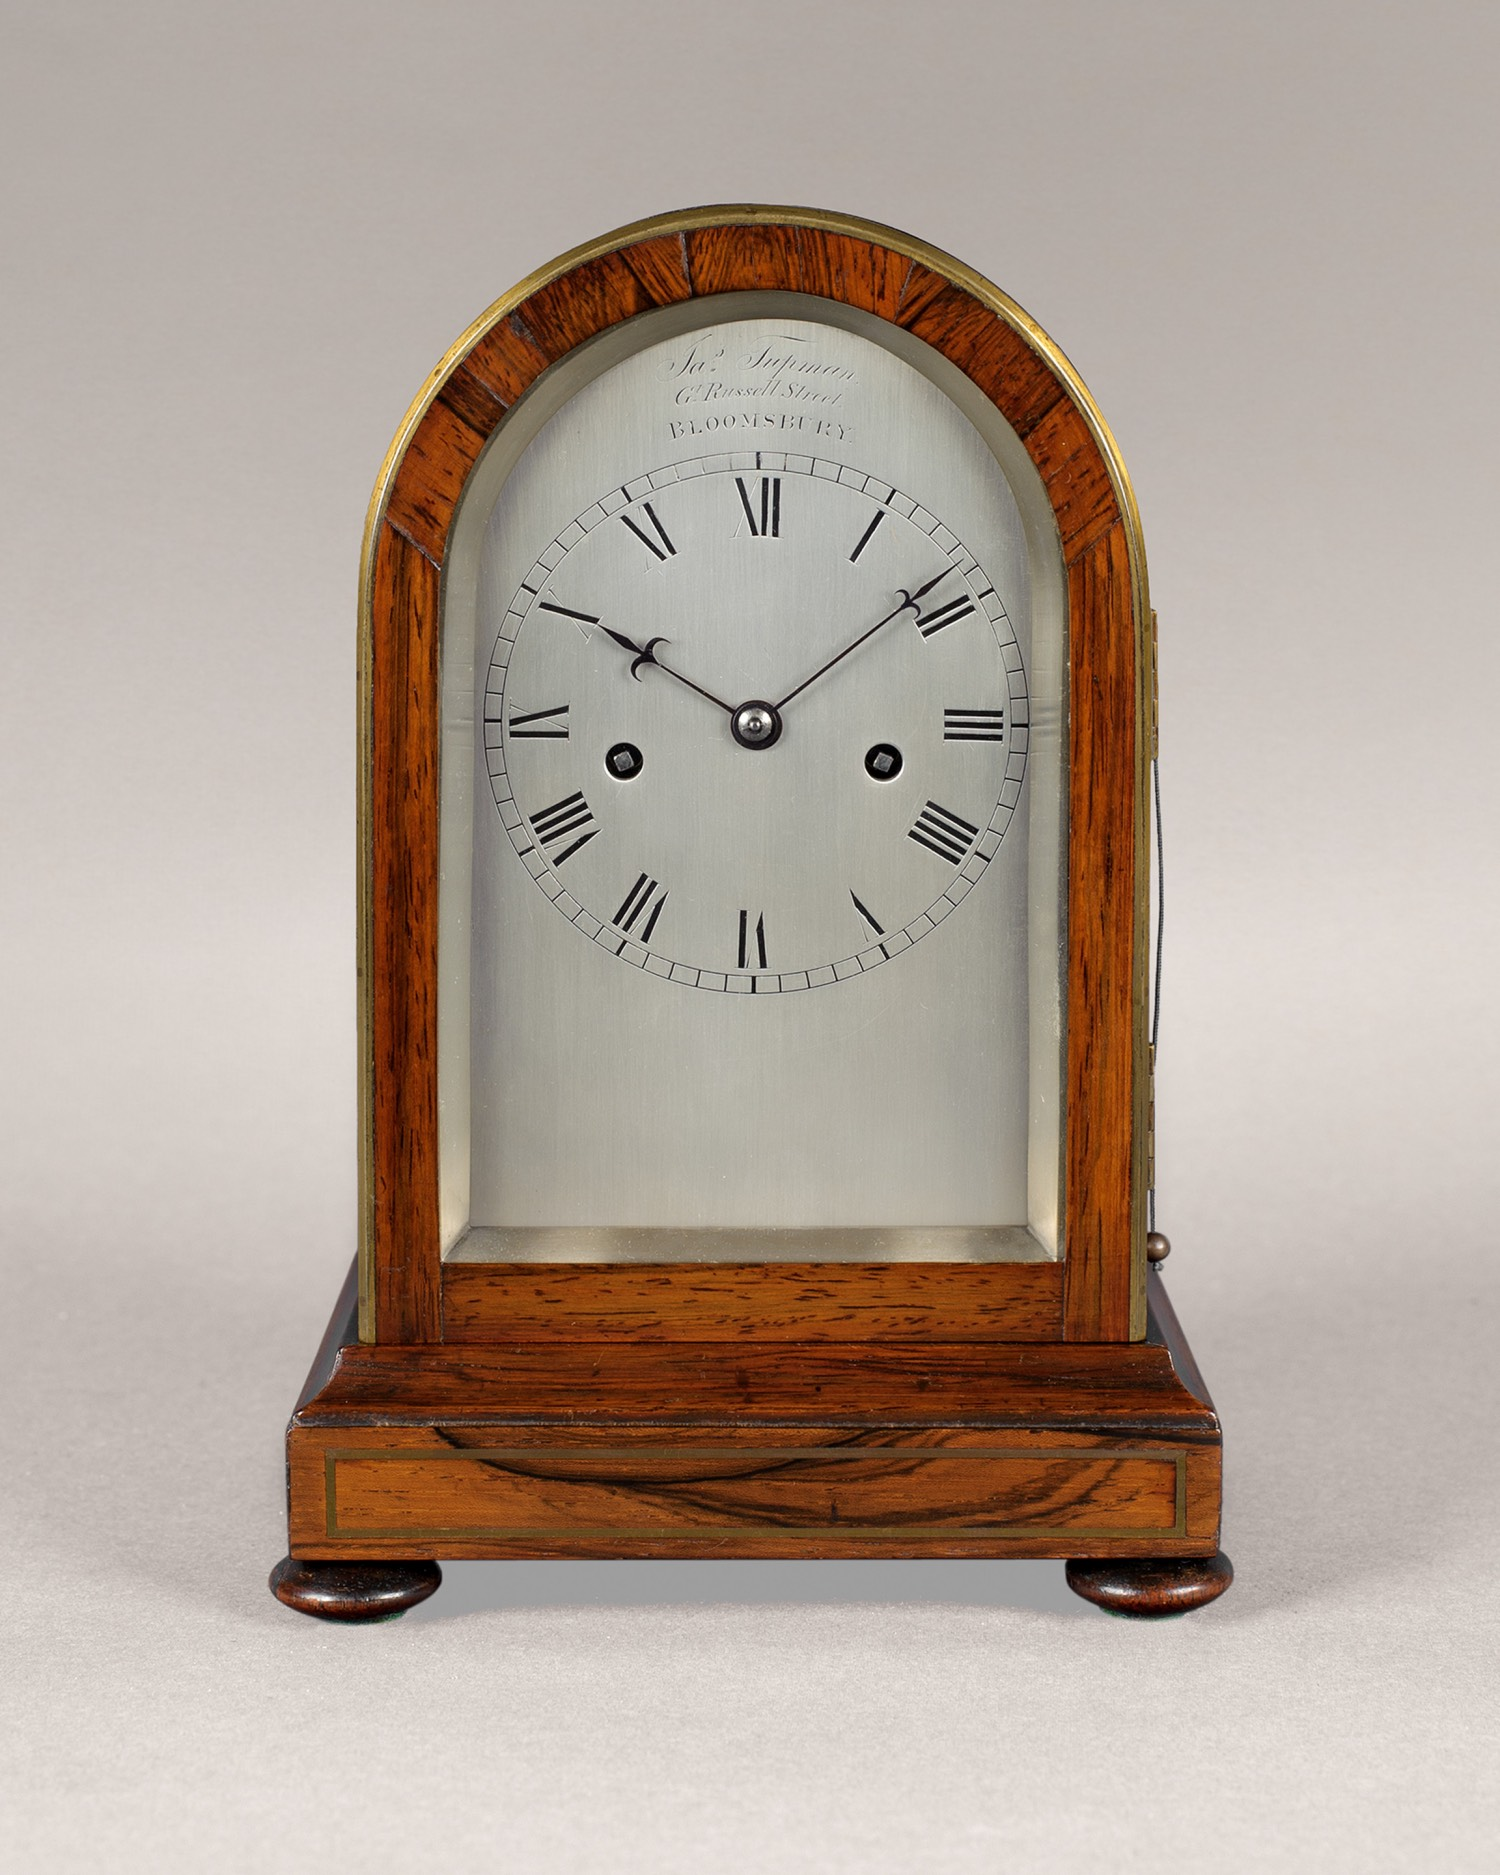 JAMES TUPMAN, A MINIATURE REGENCY ROSEWOOD AND BRASS INLAID MANTEL CLOCK